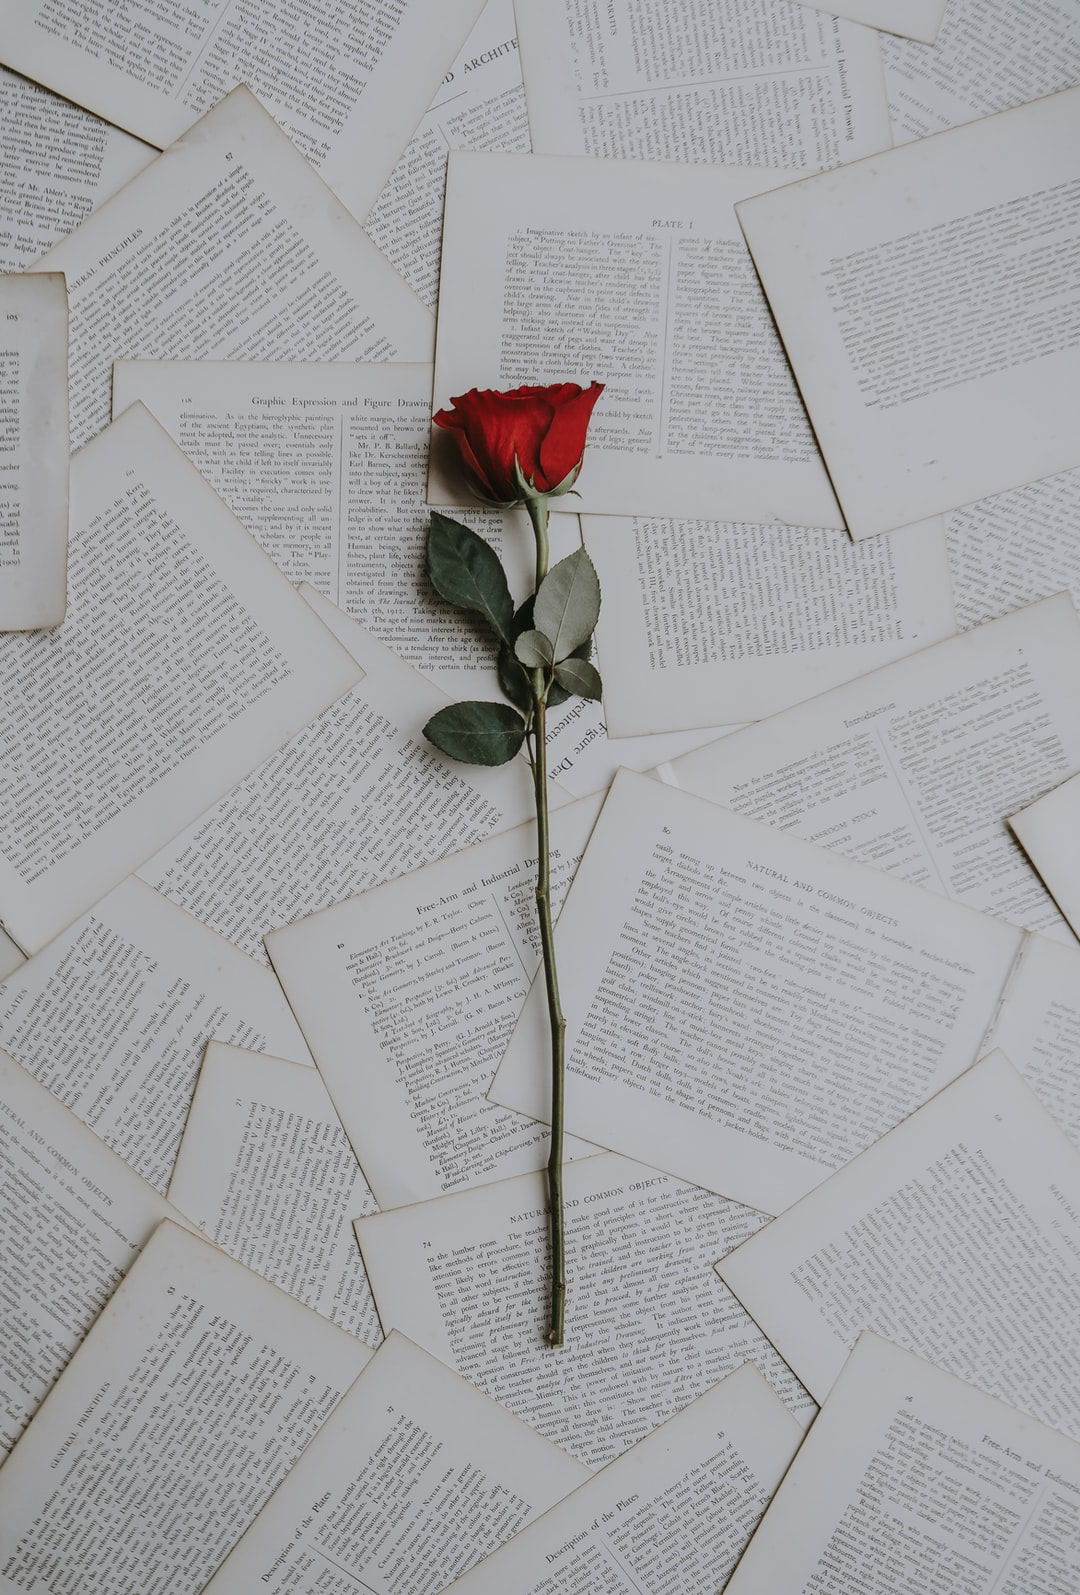 Single red rose on pages